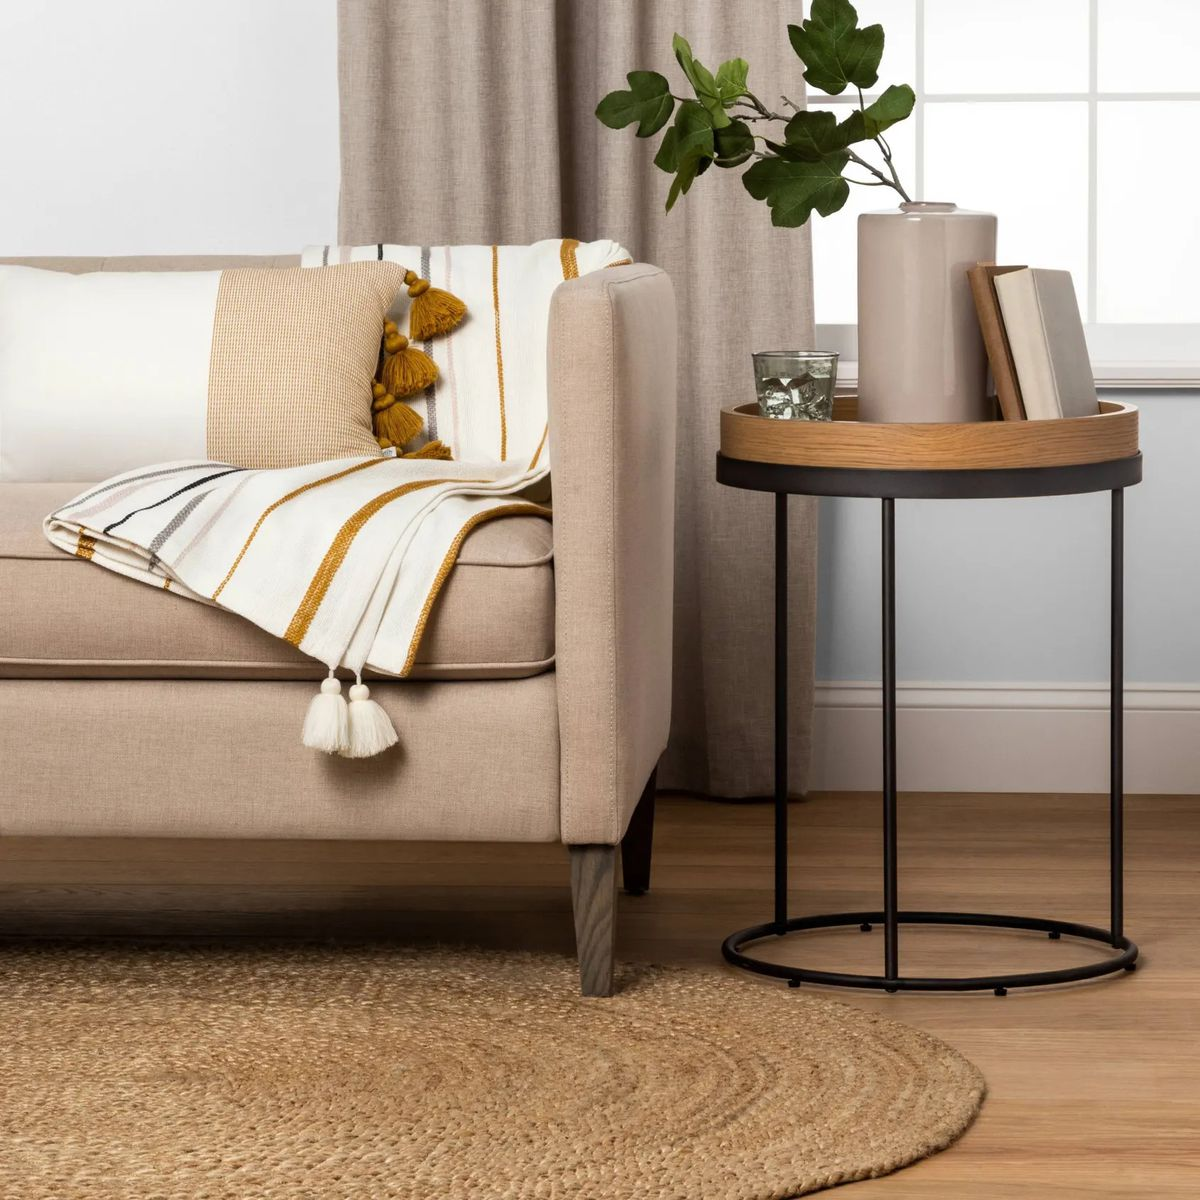 Timber and metal side table next to sofa.